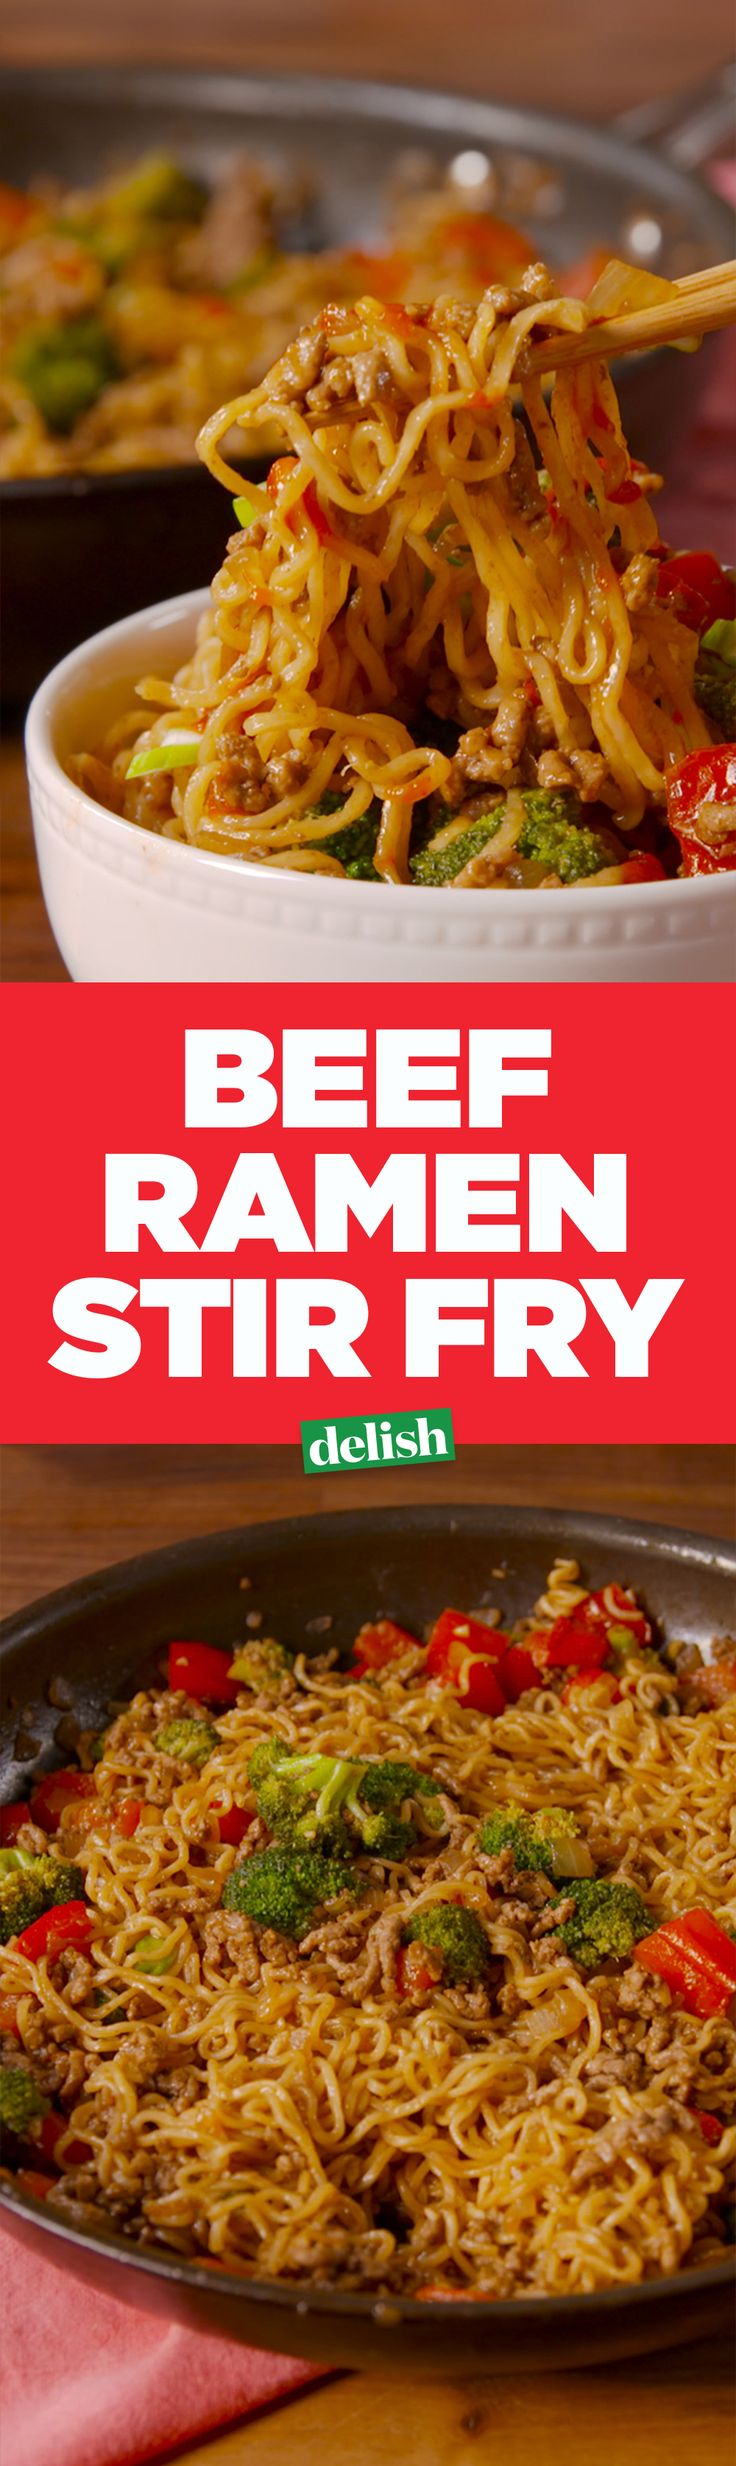 Beef Ramen Stir-Fry will completely change the way you feel about instant ramen. Get the recipe on Delish.com.